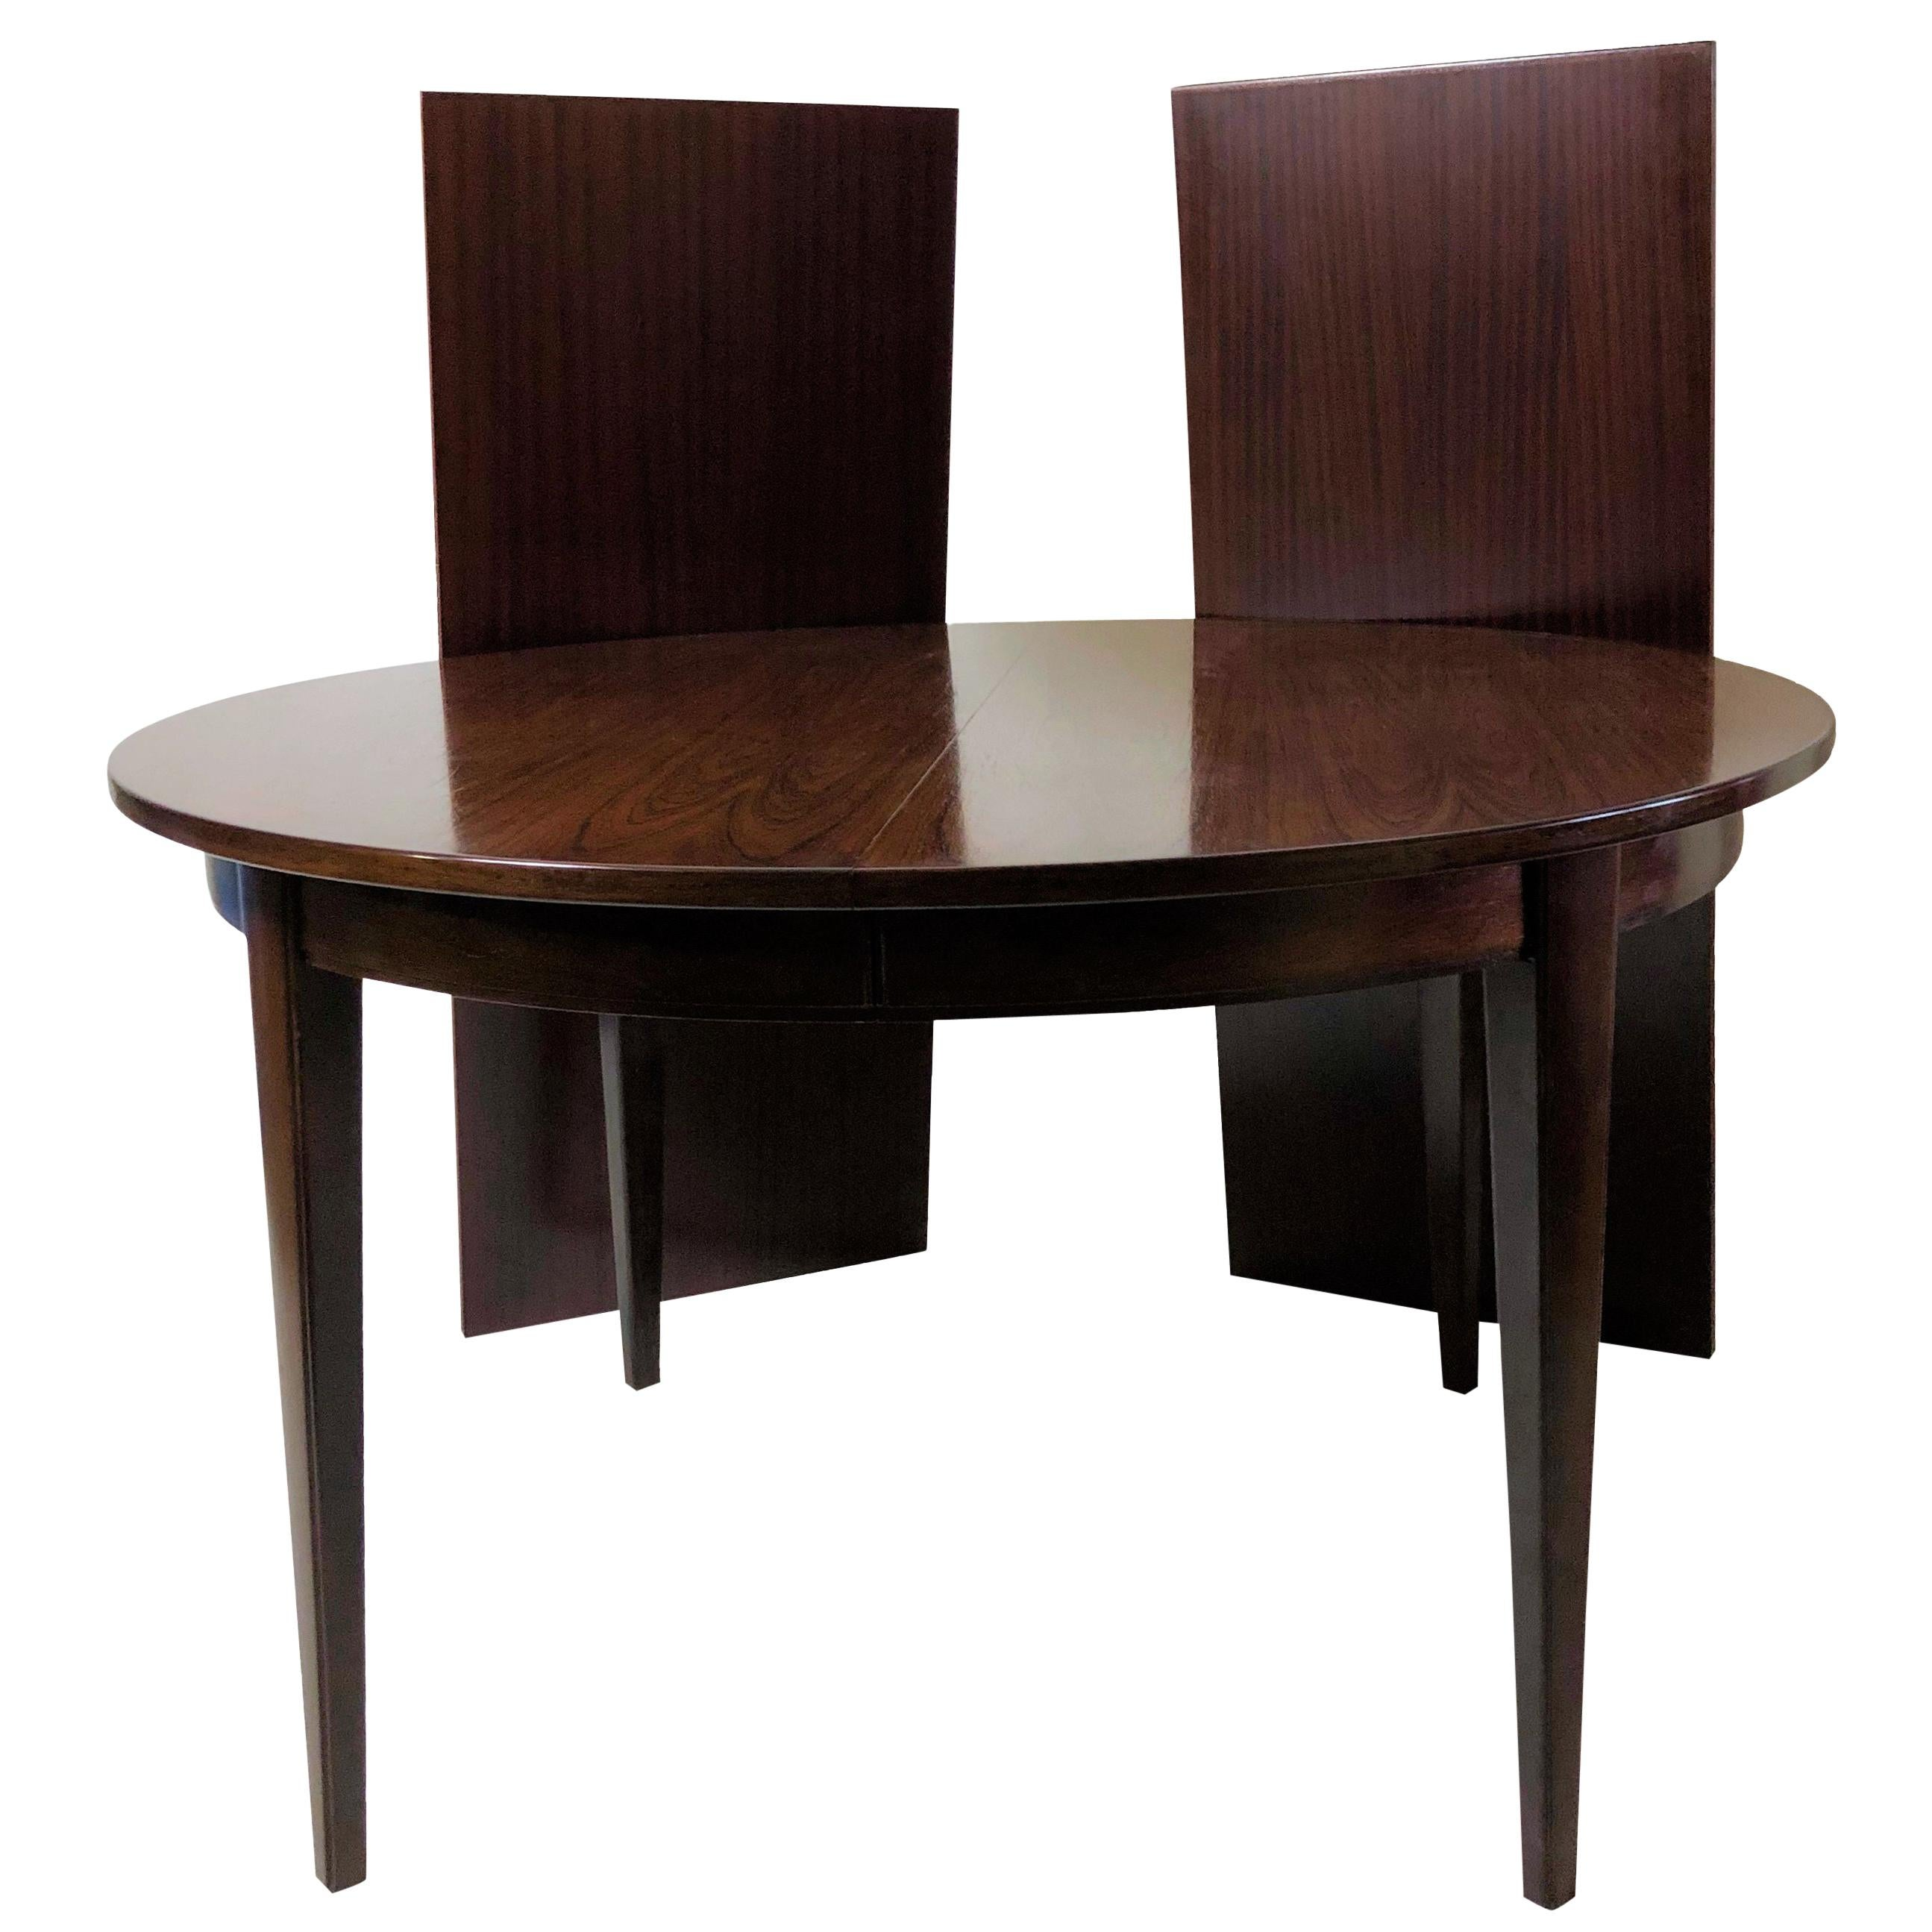 1960s Danish Omann Jun  Extendable Dining Table in Rosewood